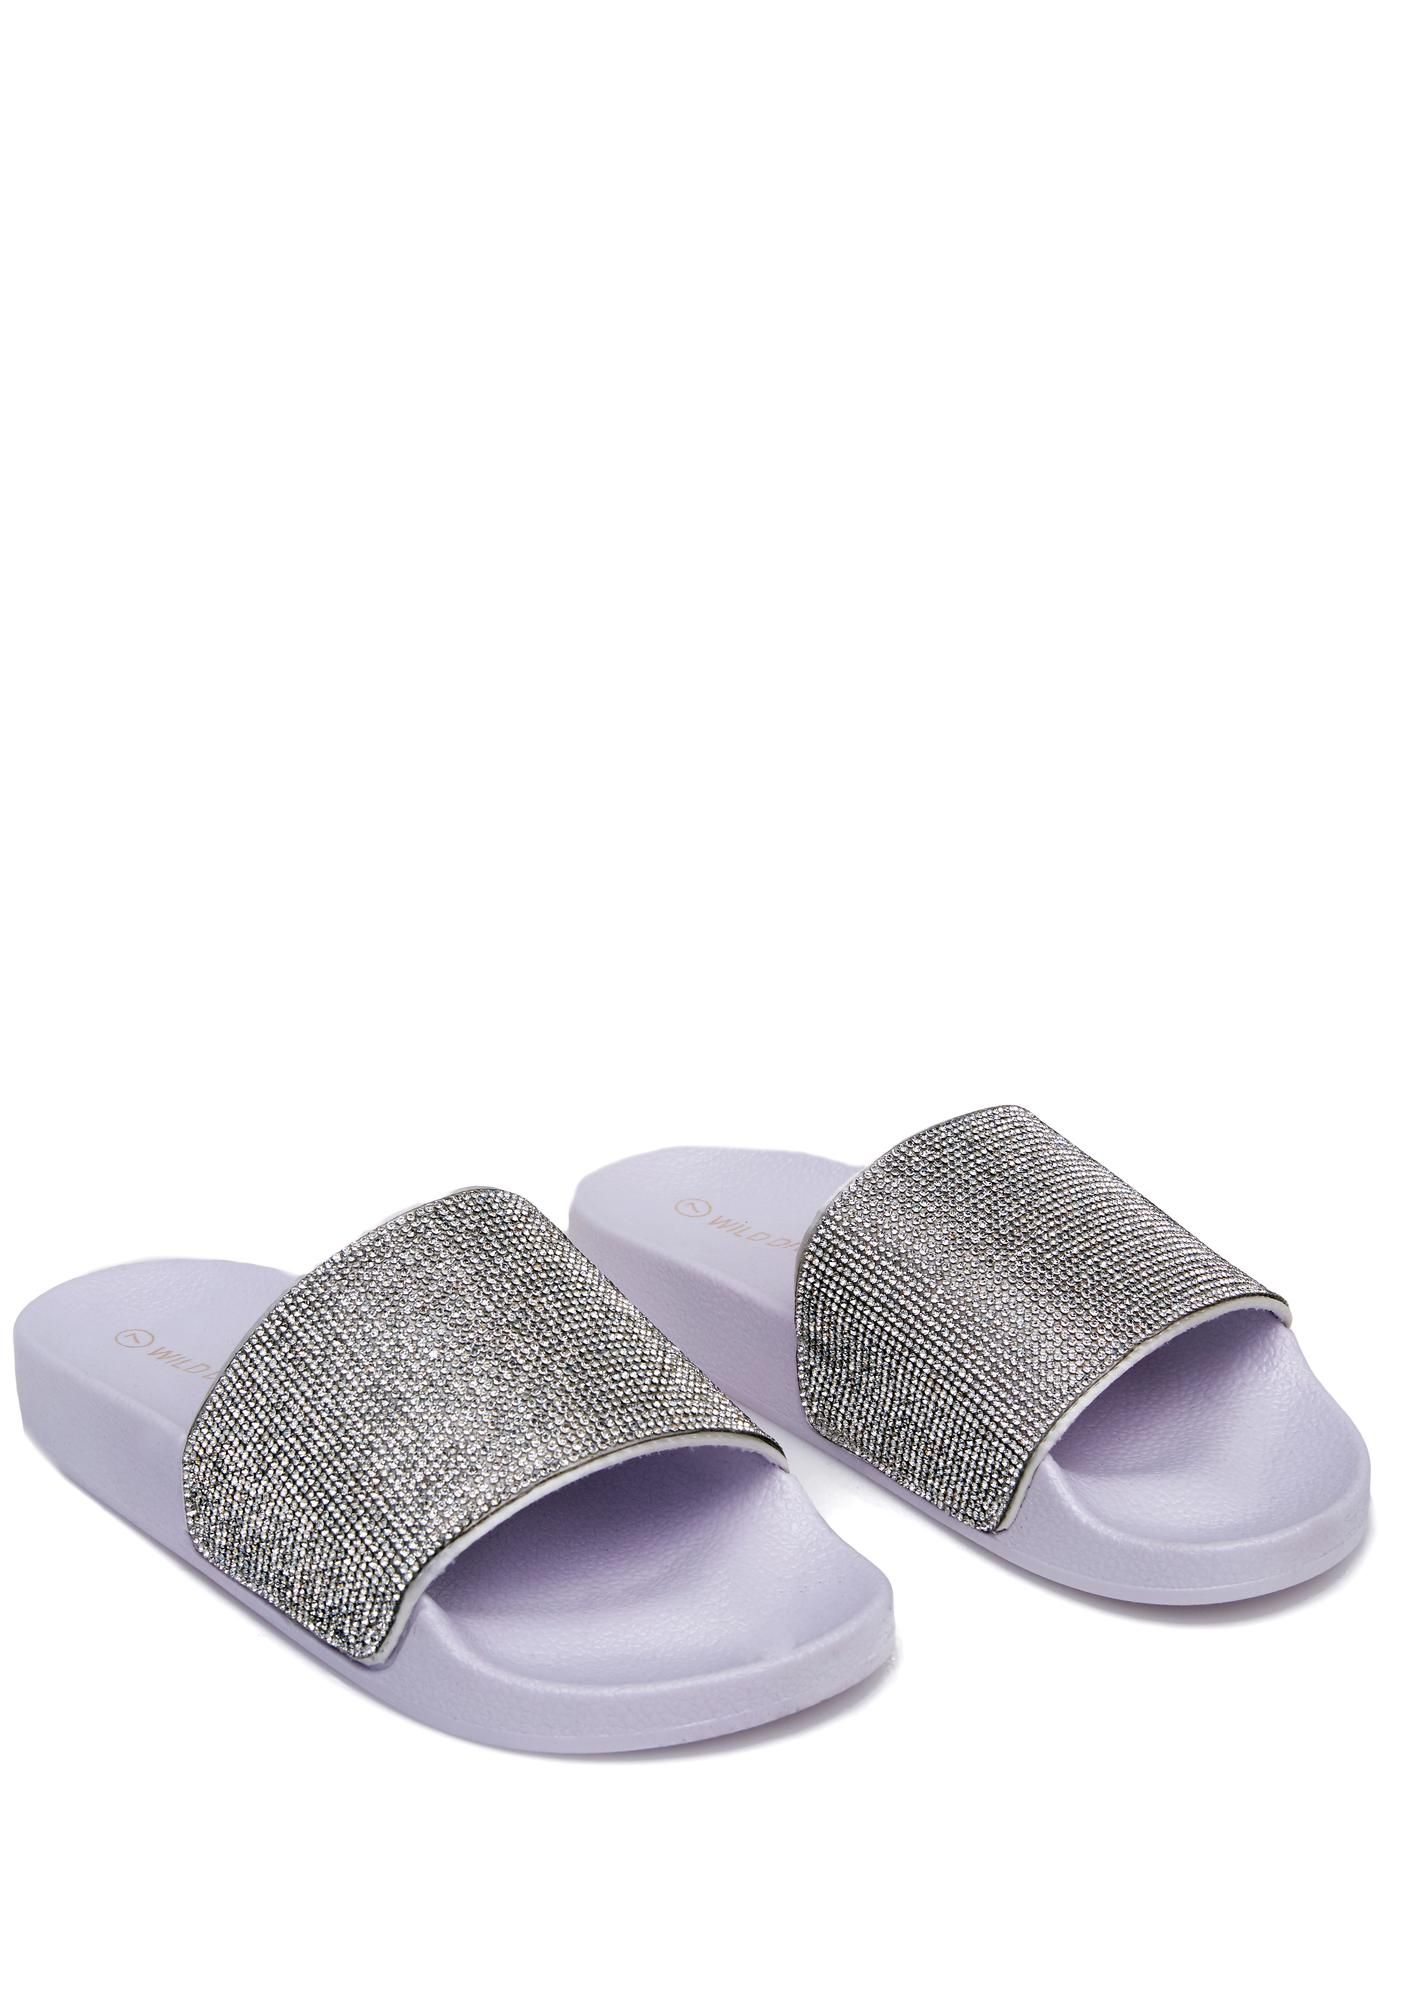 Flossy Flossy Slides